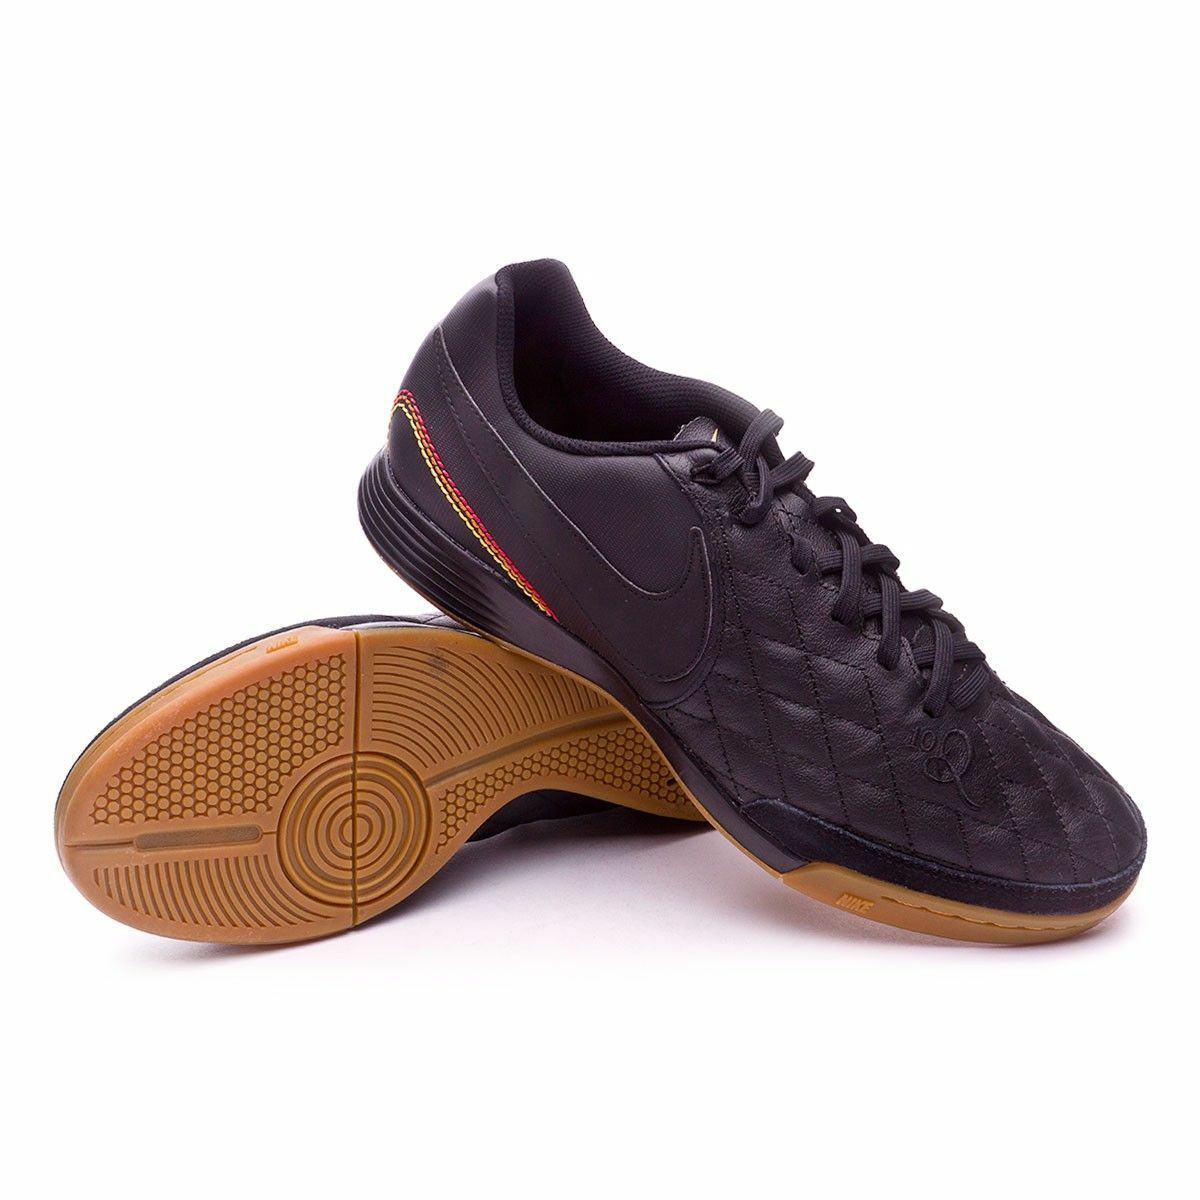 3142a70b3 NIKE TIEMPO LIGERA IV 10R IC INDOOR RONALDINHO MEN With BOX NEW SOCCER  notwlt2460-Athletic Shoes